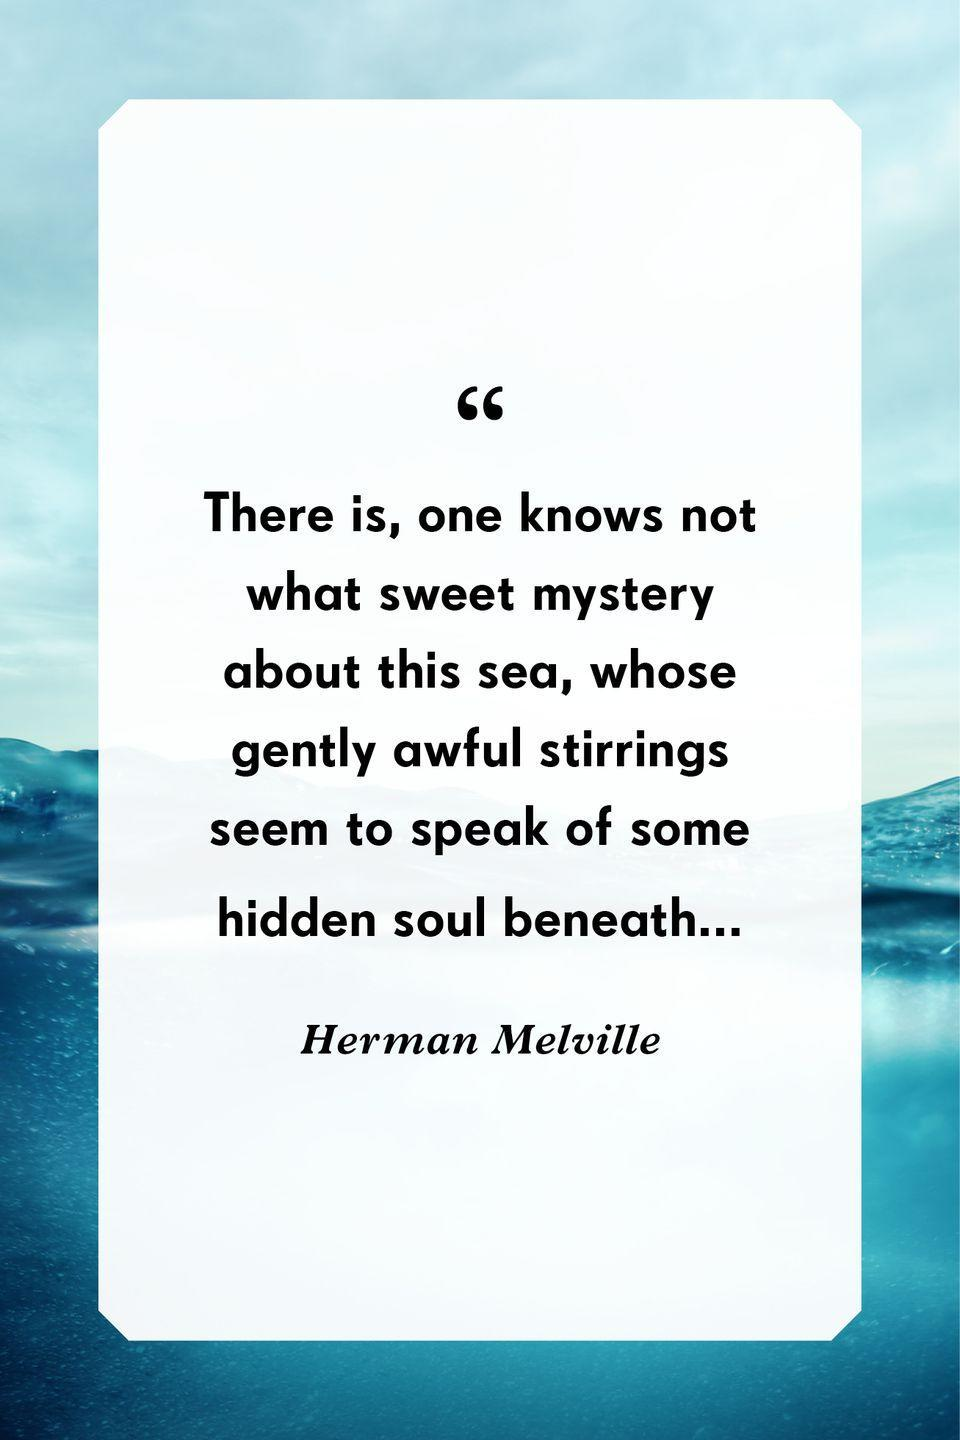 """<p>""""There is, one knows not what sweet mystery about this sea, whose gently awful stirrings seem to speak of some hidden soul beneath...""""</p>"""